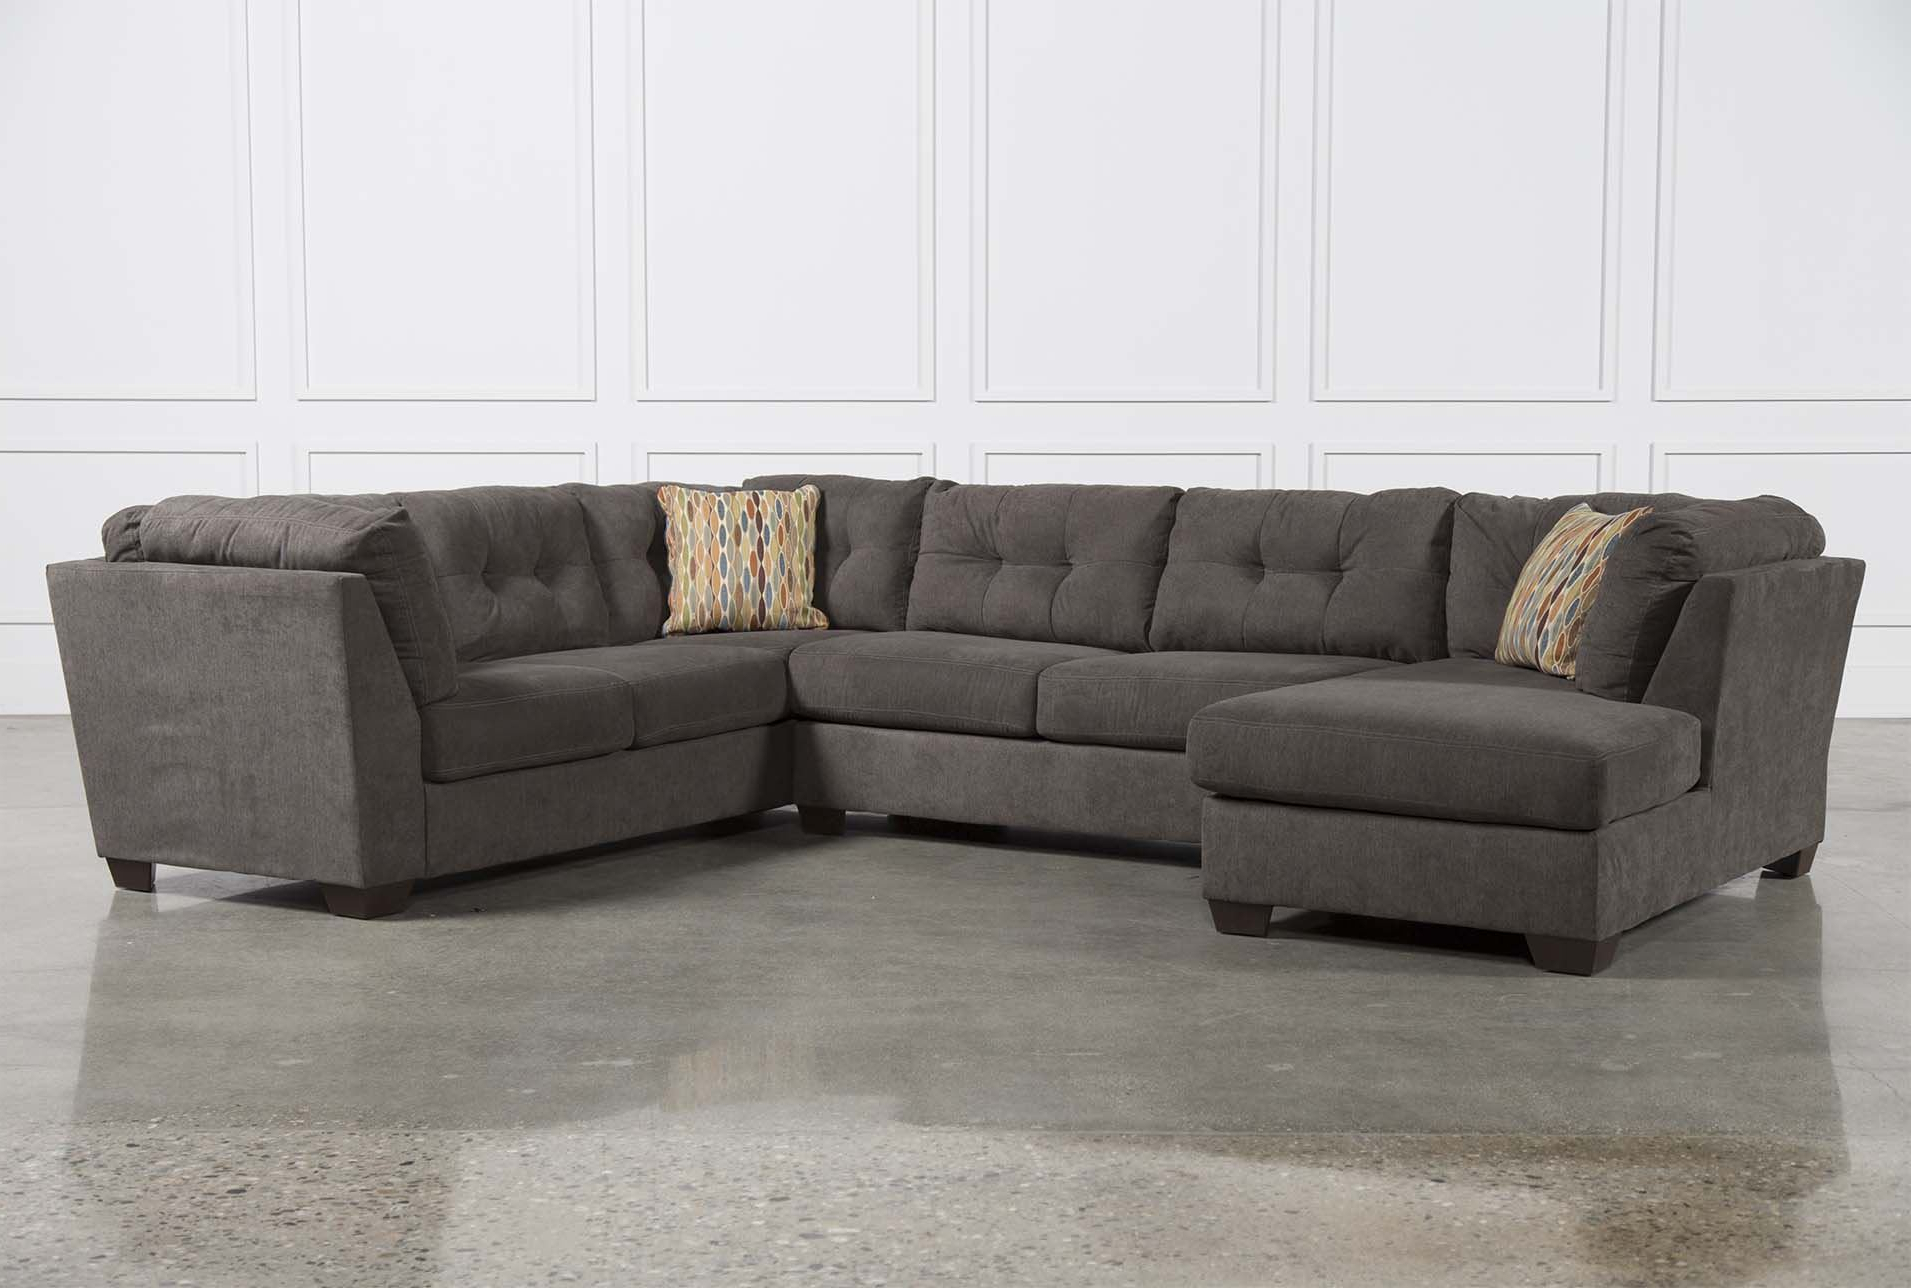 Widely Used Malbry Point 3 Piece Sectionals With Laf Chaise Inside Http://tidex/sectional Sofa Beds (View 14 of 20)